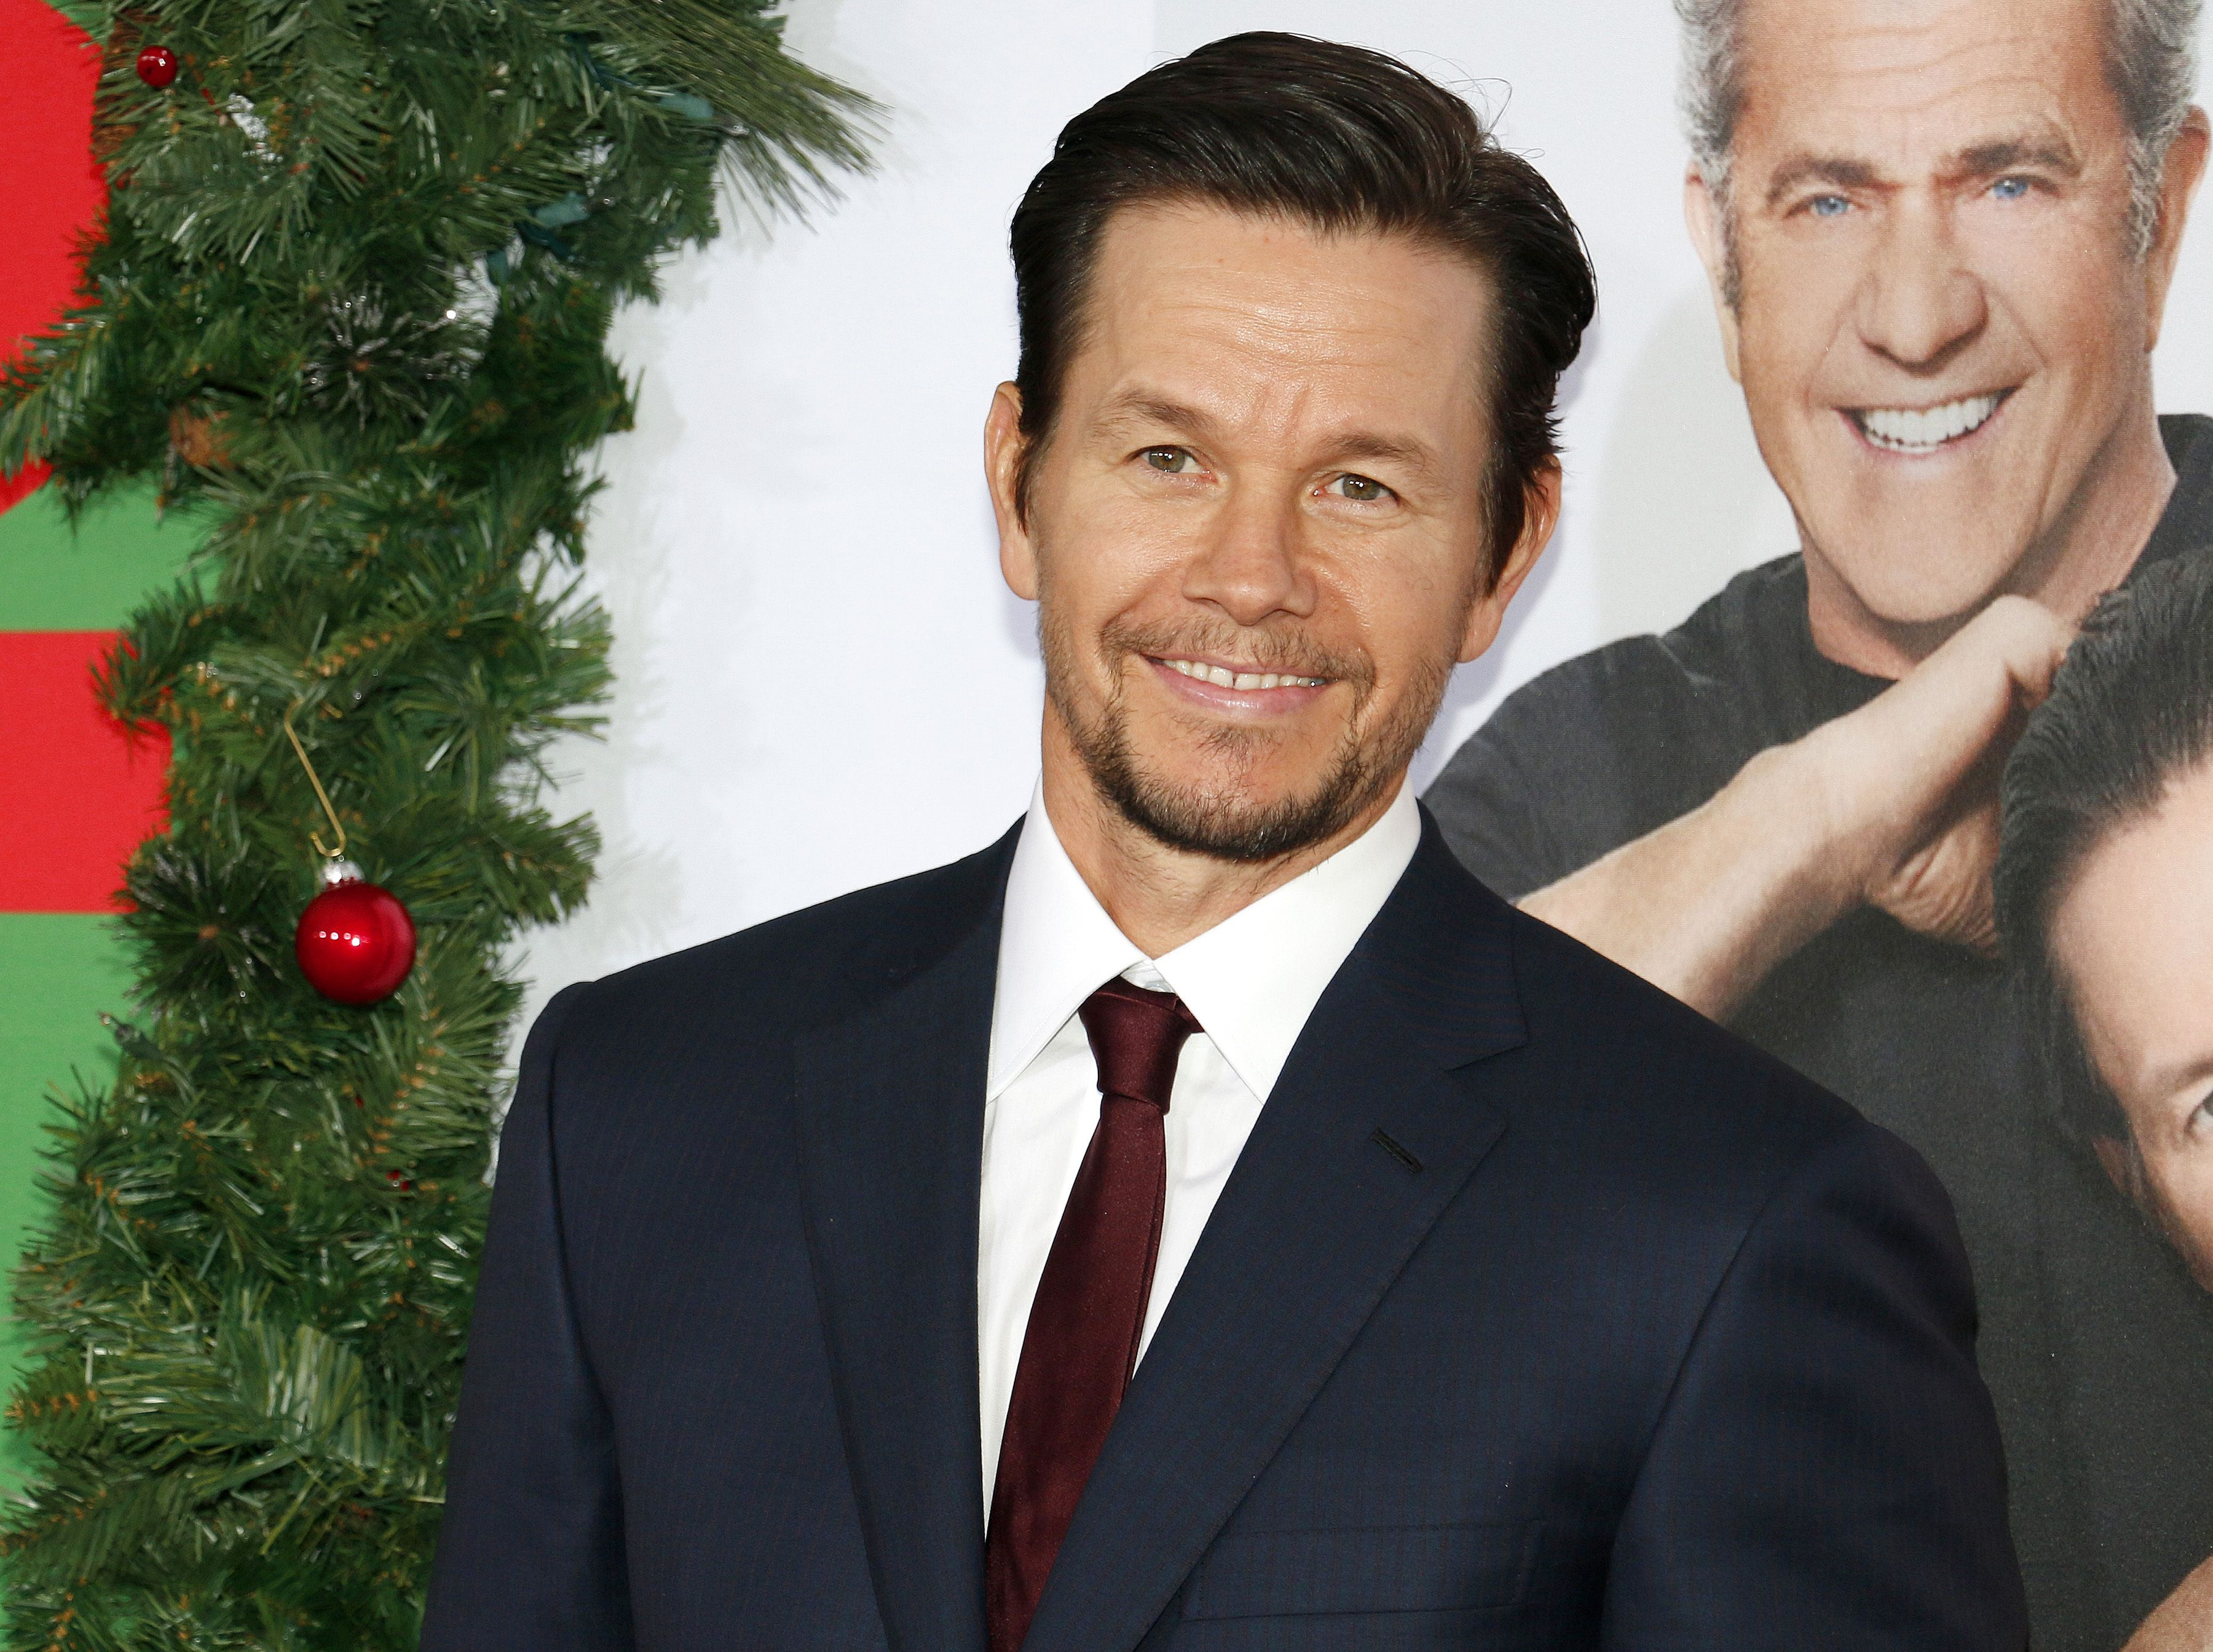 Mark Wahlberg wears a navy blazer and red tie.